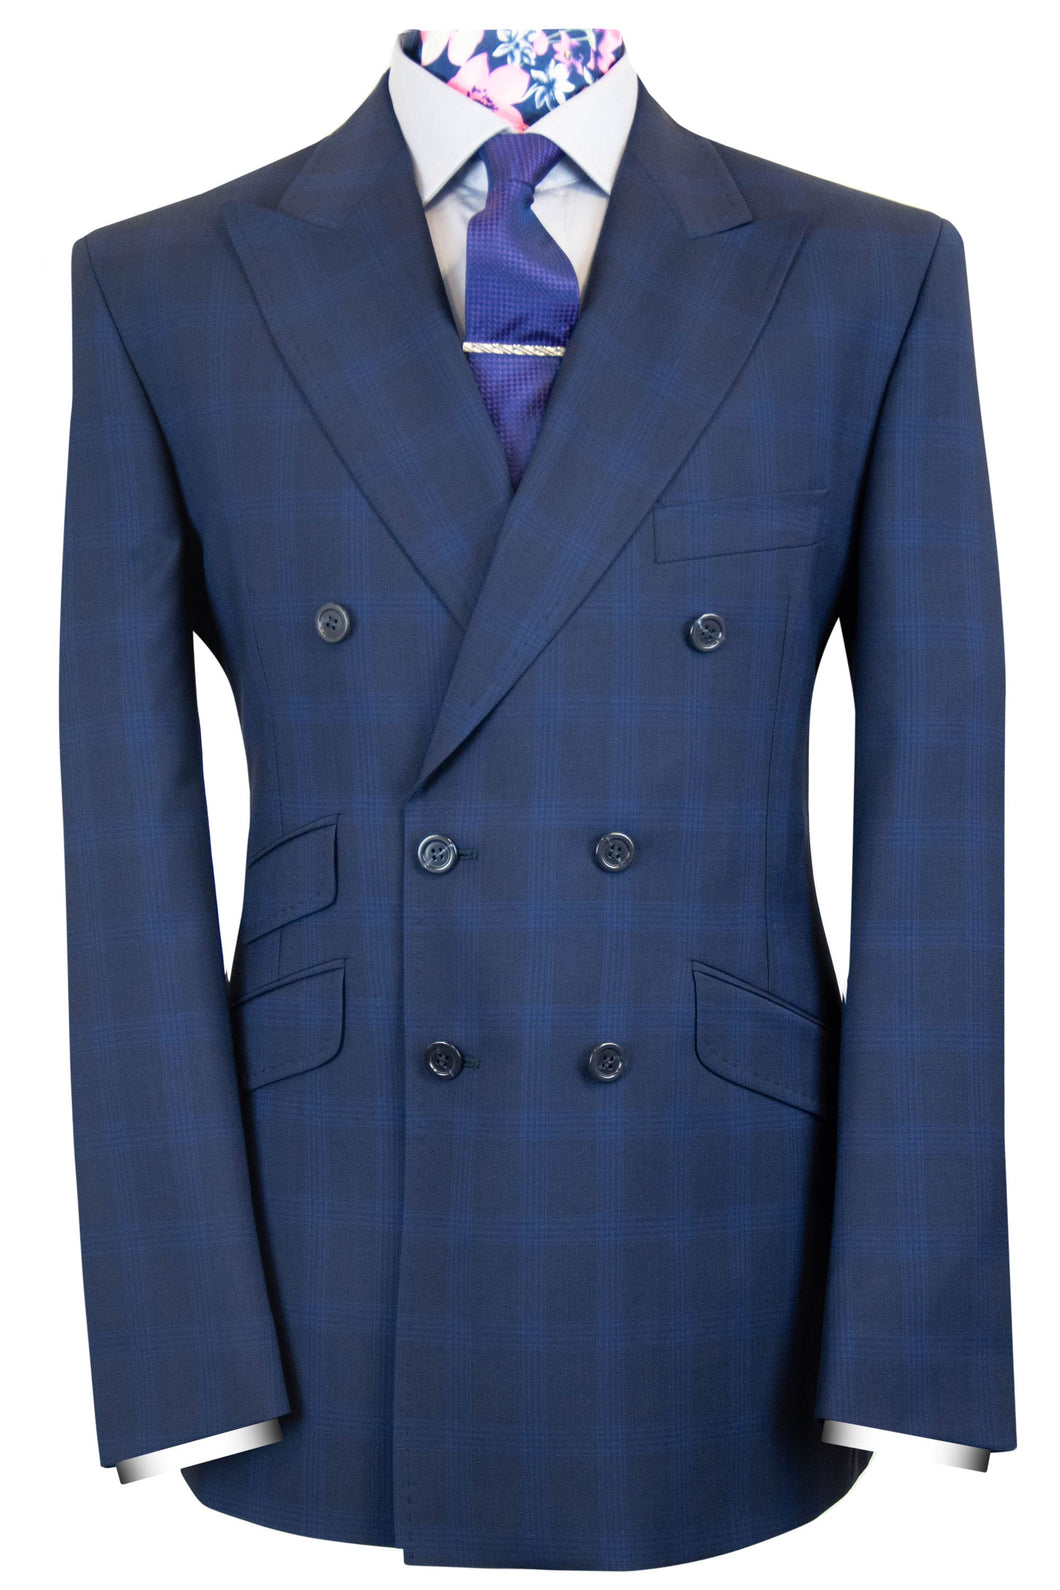 The Bradley Double Breasted Classic Navy with Blue Overcheck Suit